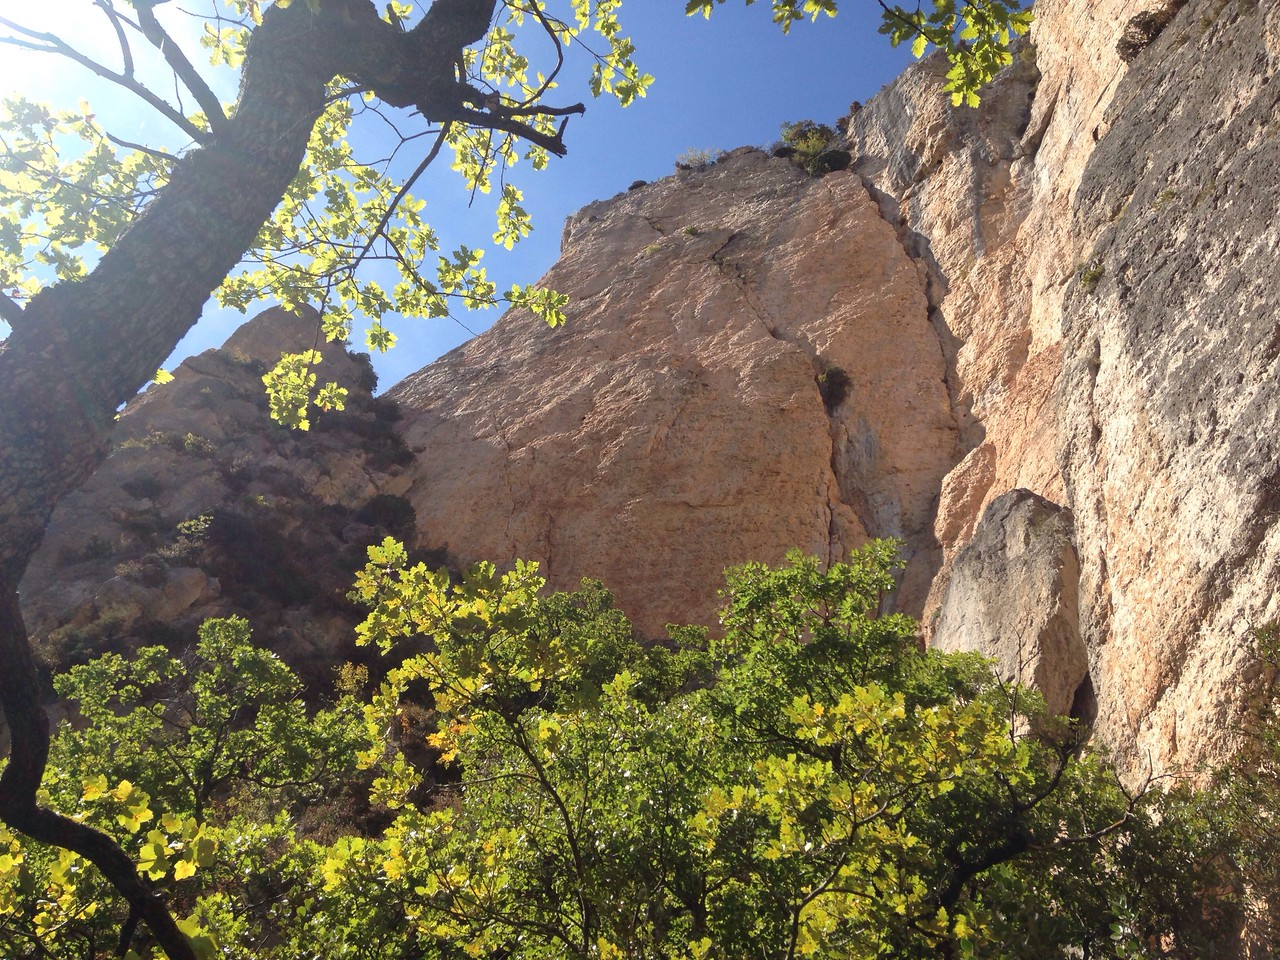 20/09/2017<br /> Went sport climbing at the Tarn yesterday, but didn't get any photos. Favourite route of the day was Tresor du Zebra (I've interpreted that to mean Zebra Treasure!) a beautiful Pickett and steep 7a.<br /> Today we're back at la Jonte. First route was the left trending diagonal crack with the bush on it called La Demande Aveyronnaise. It was 4 pitches of trad and bolts, and supposedly got three stars in the Rockfax guide. We've done La Demamde in Verdon, so this was the La Demand of this area (Aveyronnaise). It was airy, but the rock was a little average in places, and it actually wasn't that good. We were quite disappointed!